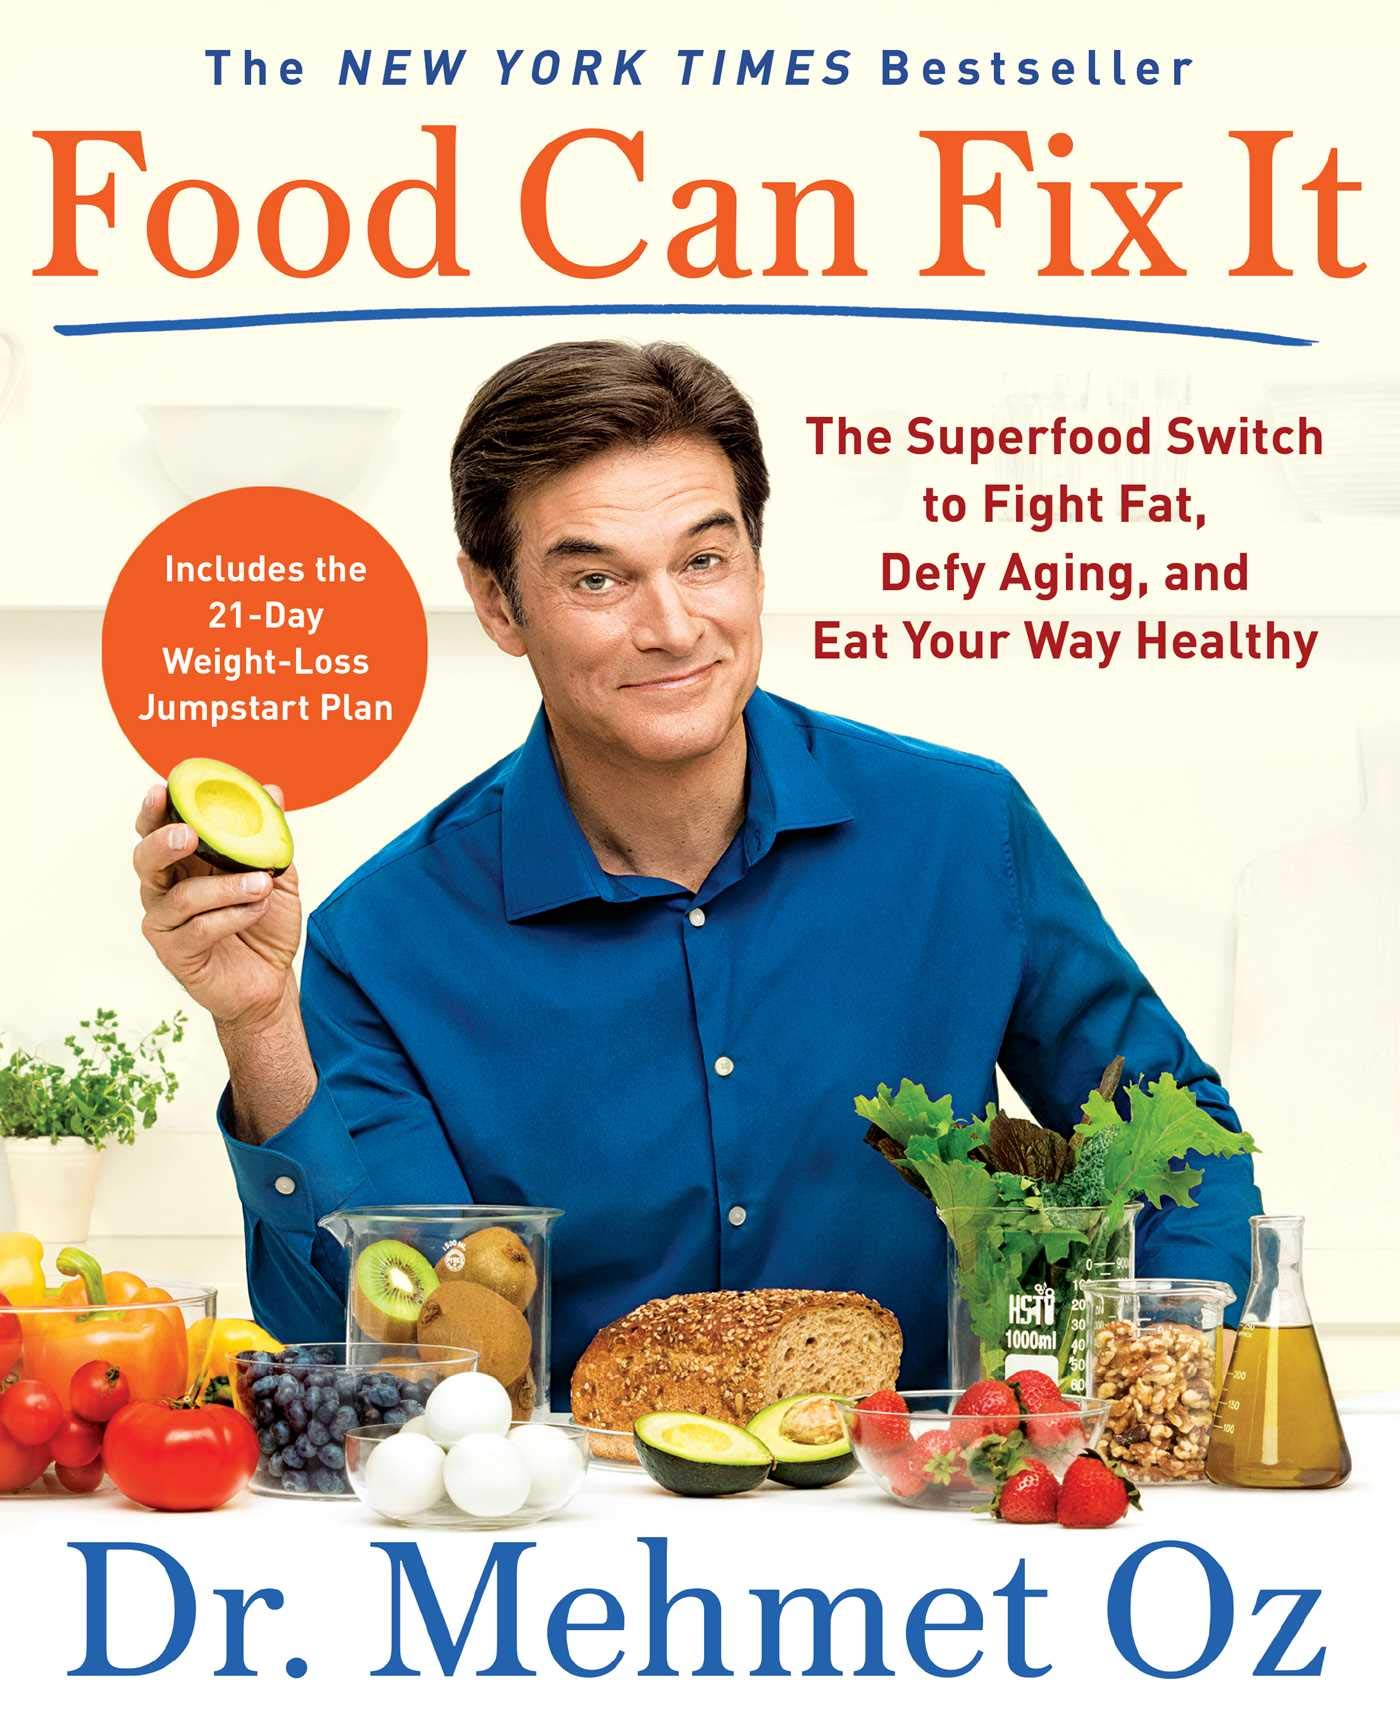 Food Can Fix Superfood Healthy product image